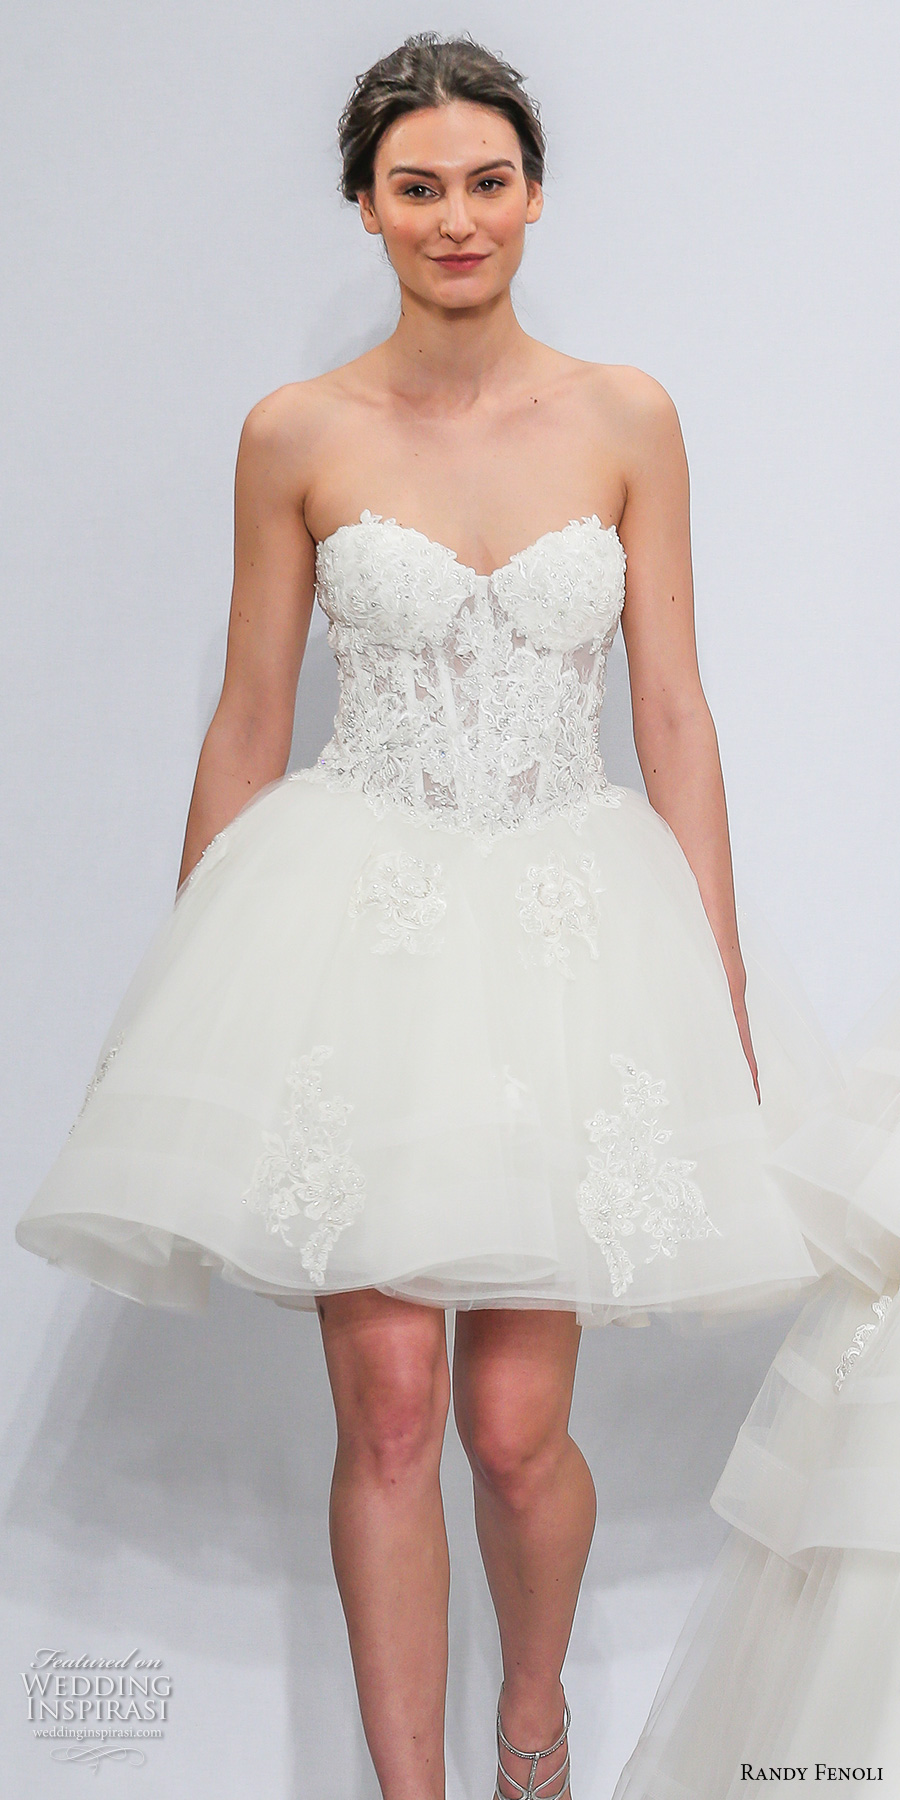 randy fenoli spring 2018 bridal strapless sweetheart neckline heavily embellished bodice bustier romantic above the knee short wedding dress (25) mv